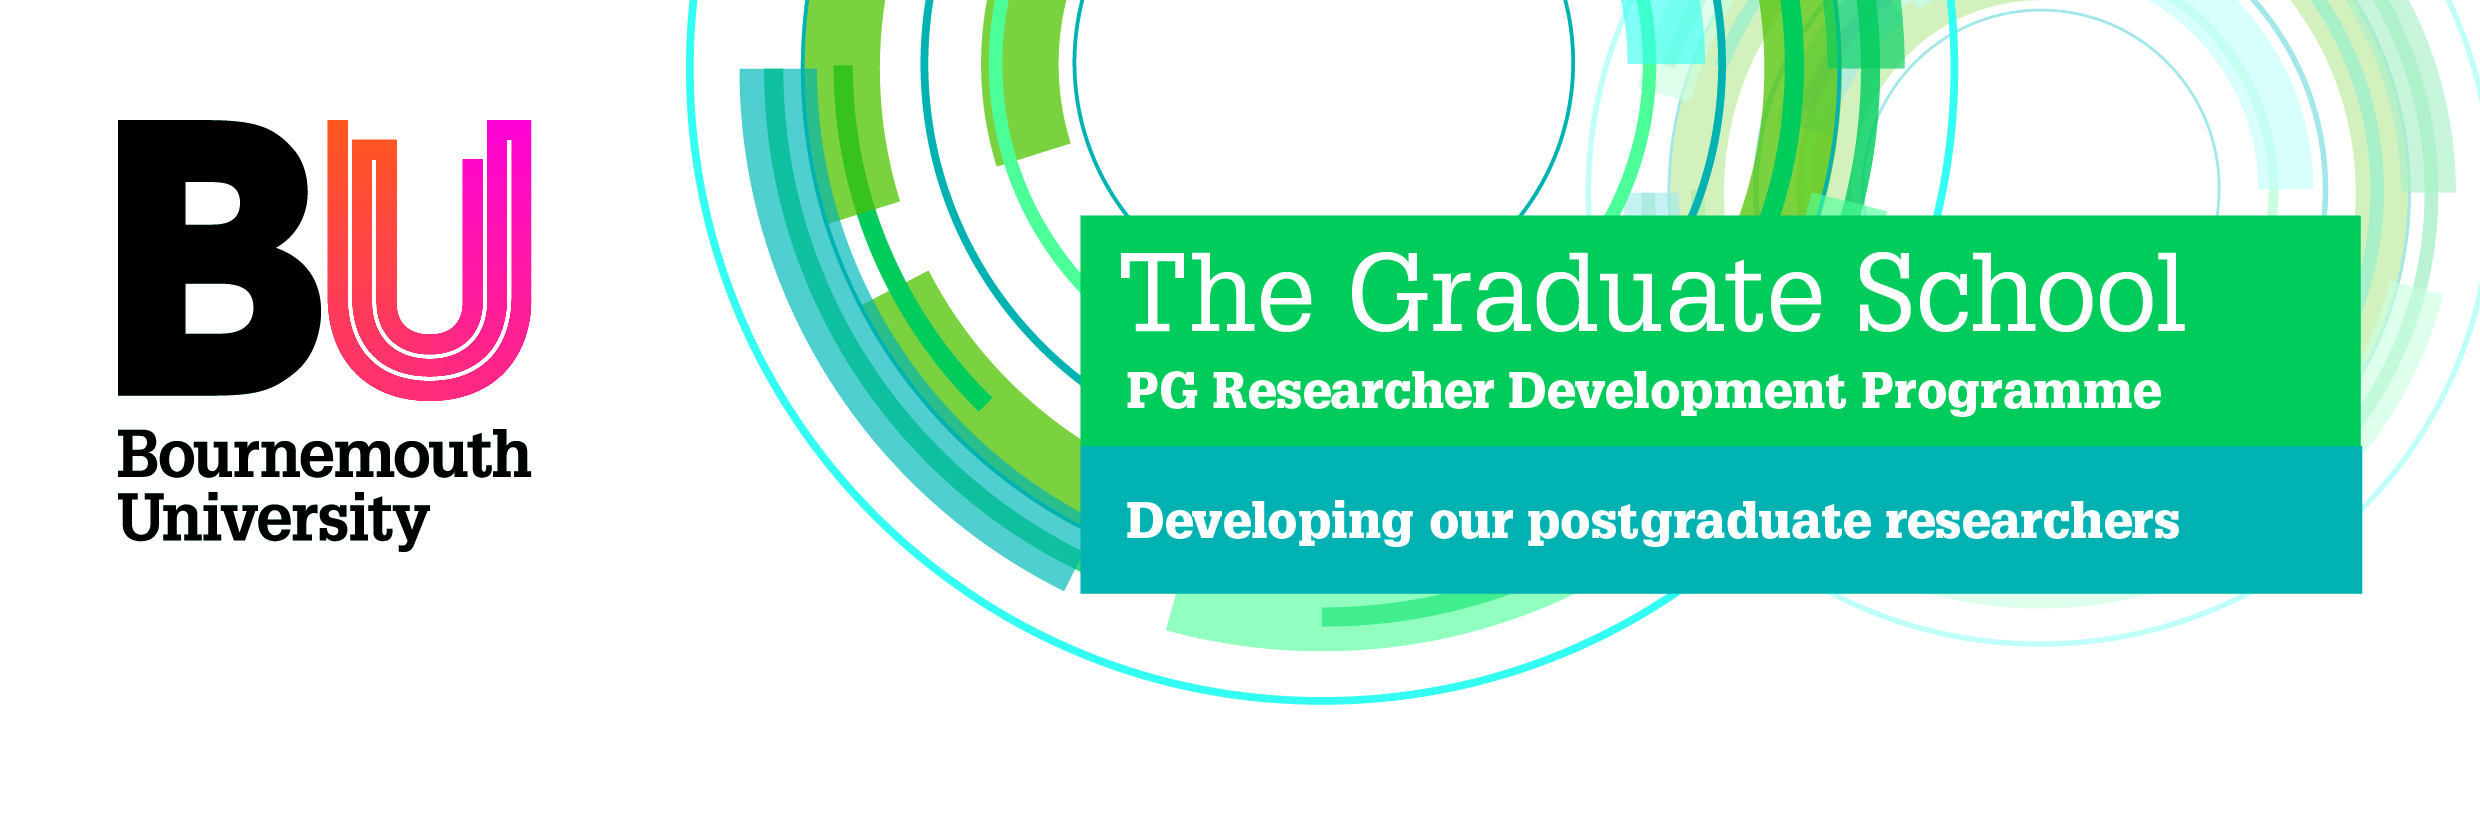 postgraduate thesis toolkit Due to the particular nature of instruction and guidance, research supervision can be considered a unique form of teaching ─ one that requires personalising your teaching approach to the individual student whether supervising research at the undergraduate or postgraduate level, you are supporting students on their path.